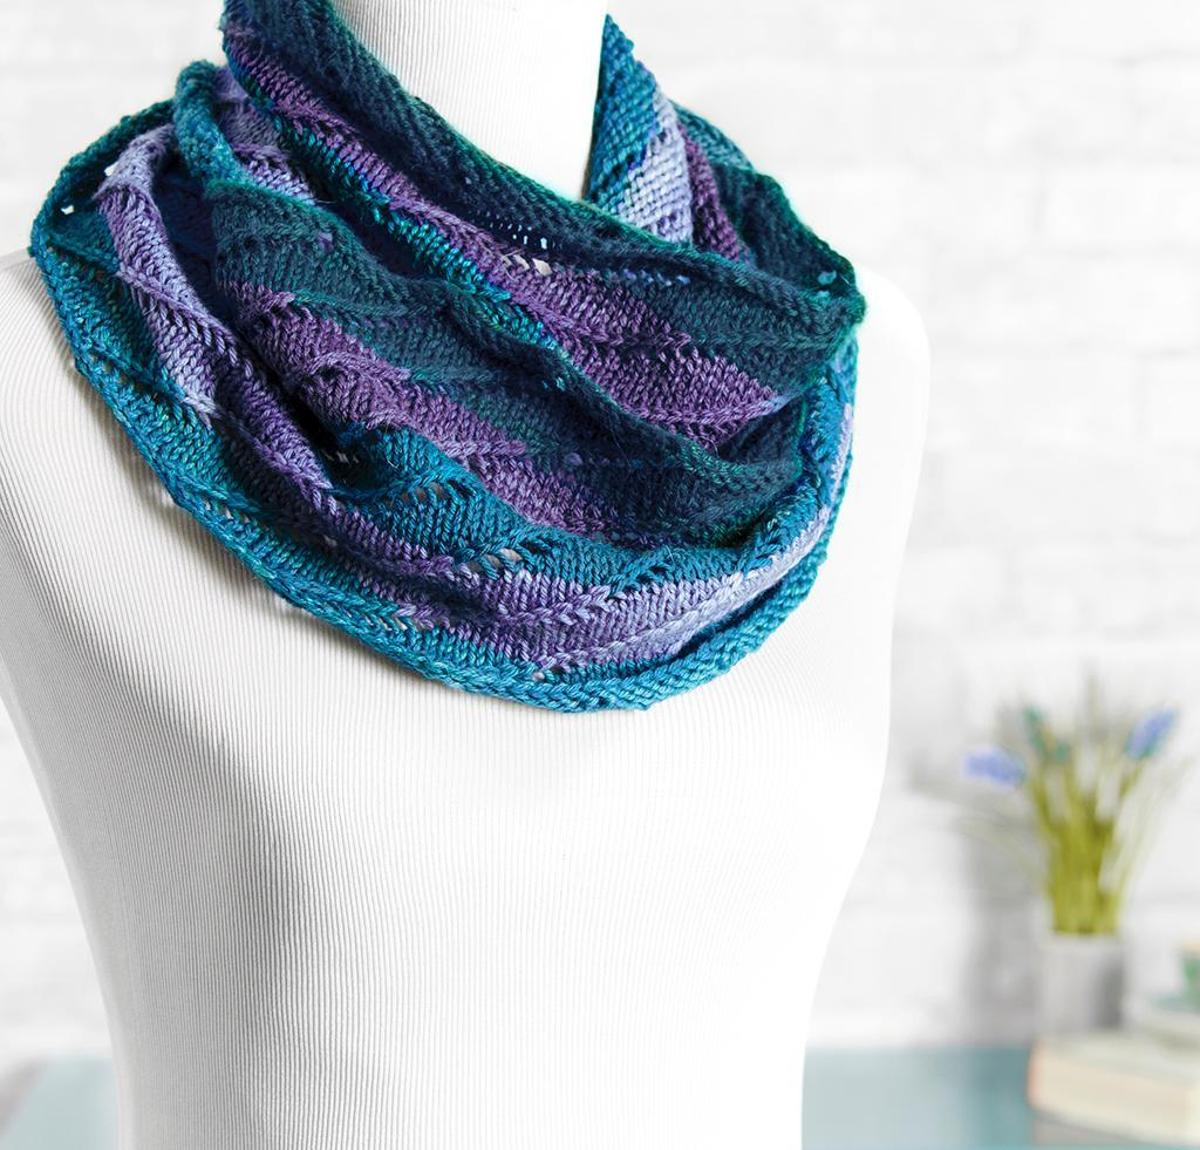 Cowl Knit Patterns Cowl Neck Knitting Patterns Keep Warm This Winter